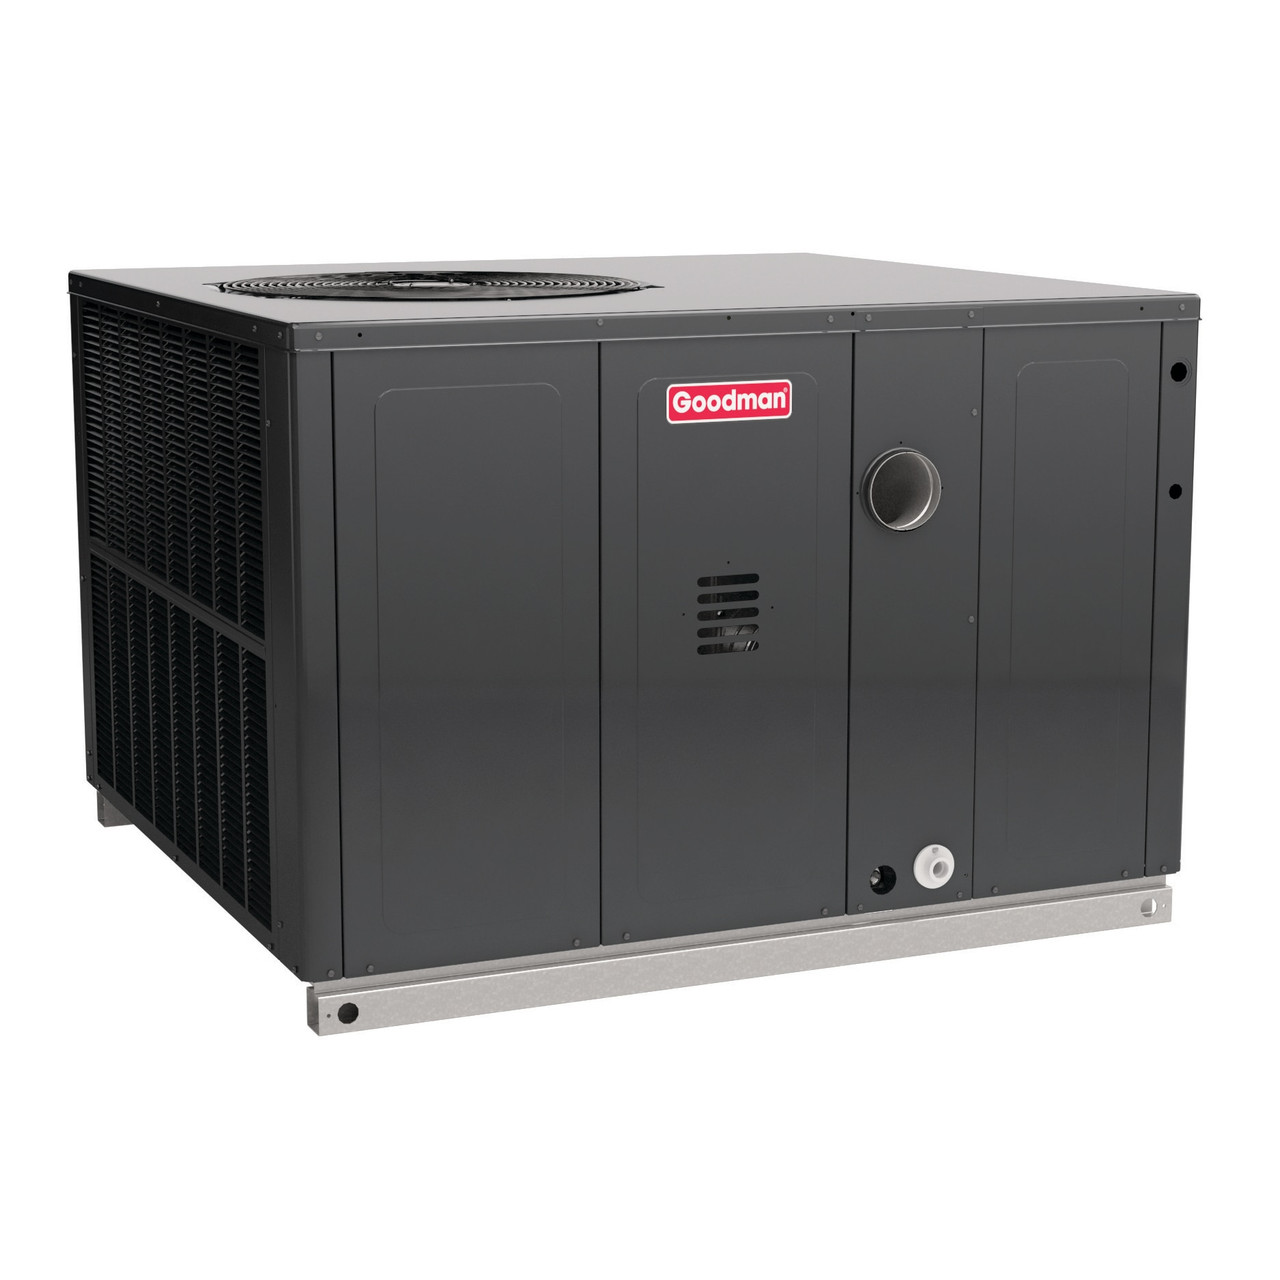 New Ac Depot Sells High Value Diy Central Air Conditioning Direct Including This 5 Ton 140 000 Btu Heat 16 Seer Goodmanbrand Sku Gm386 Gas Heat Air Conditioner Package Unit